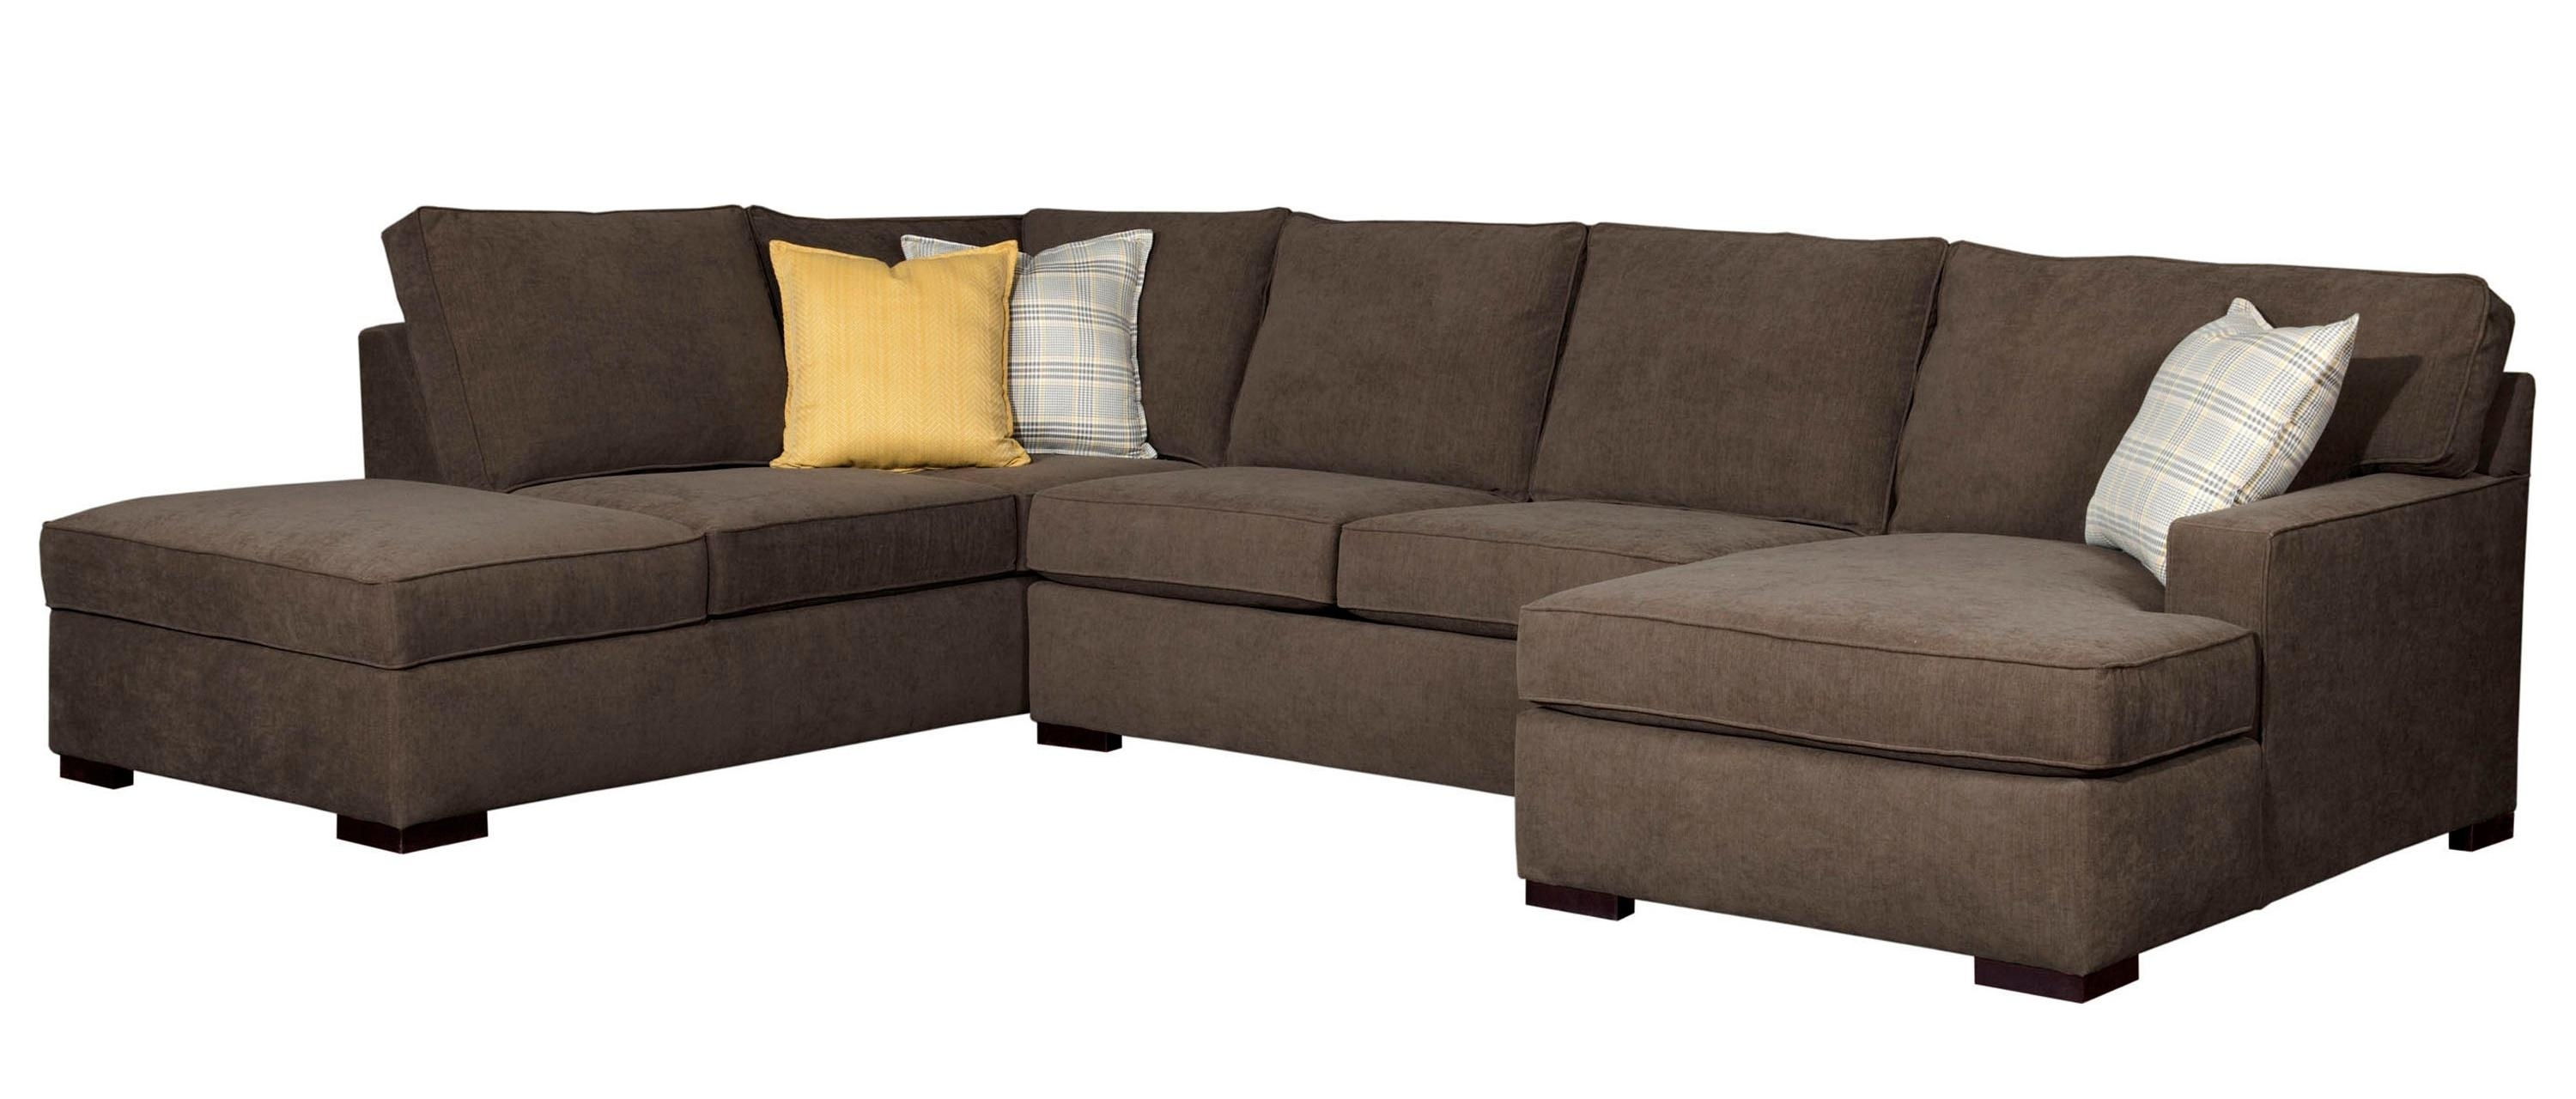 Raphael Contemporary Sectional Sofa With Raf Corner Storage Chaise With Naples Fl Sectional Sofas (View 9 of 10)